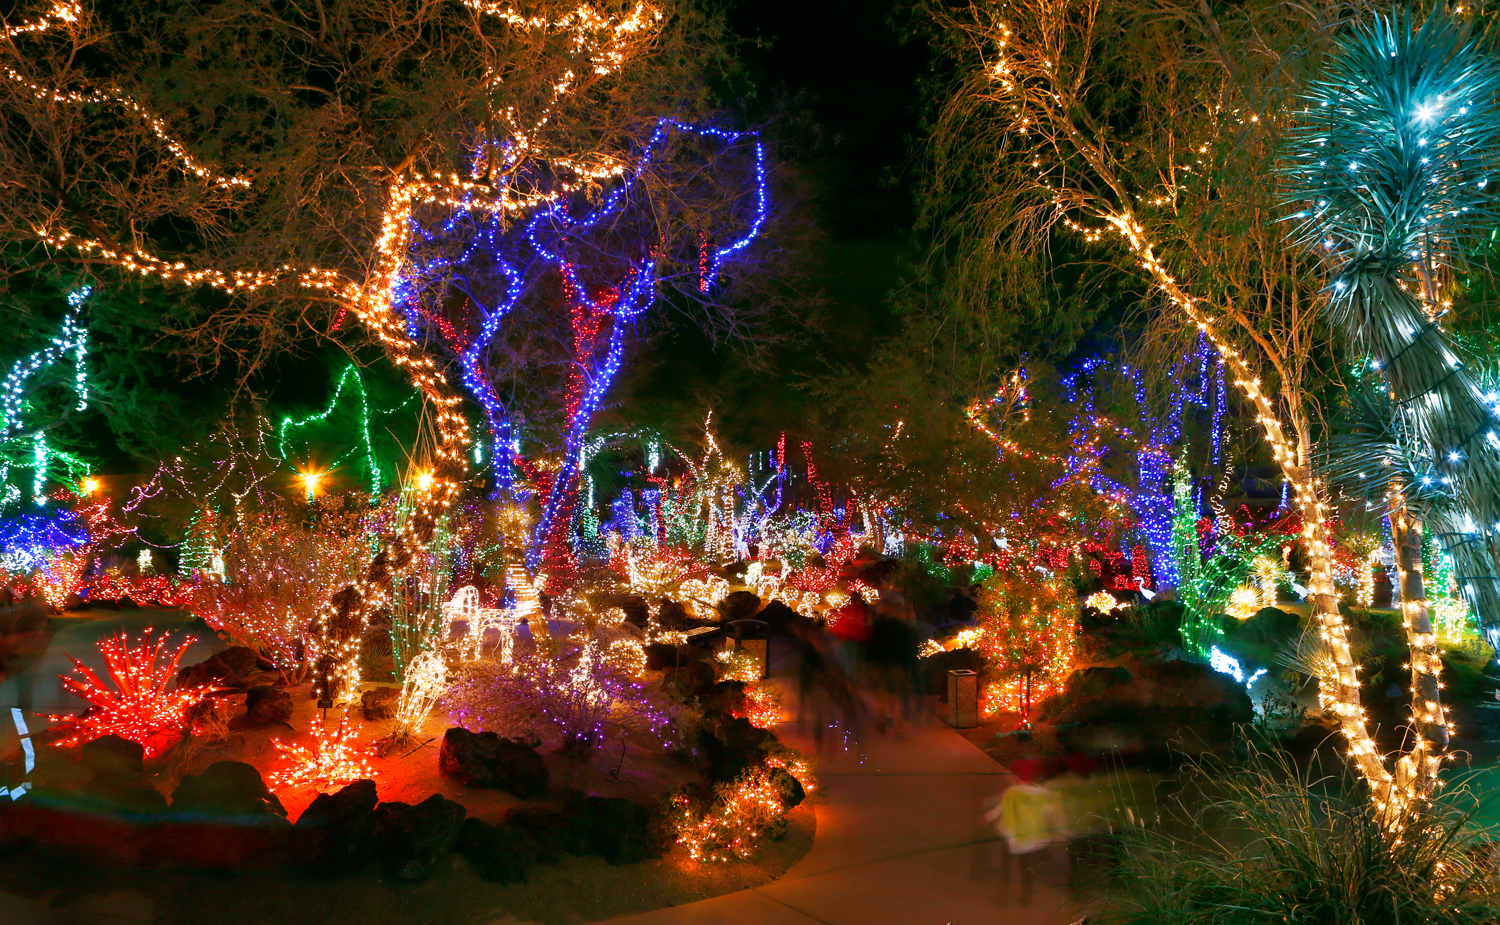 Holiday lights cover the cacti at Ethel M's Chocolate Factory and Cactus Gardens. Photo courtesy of L.E. Baskow / Las Vegas Sun.